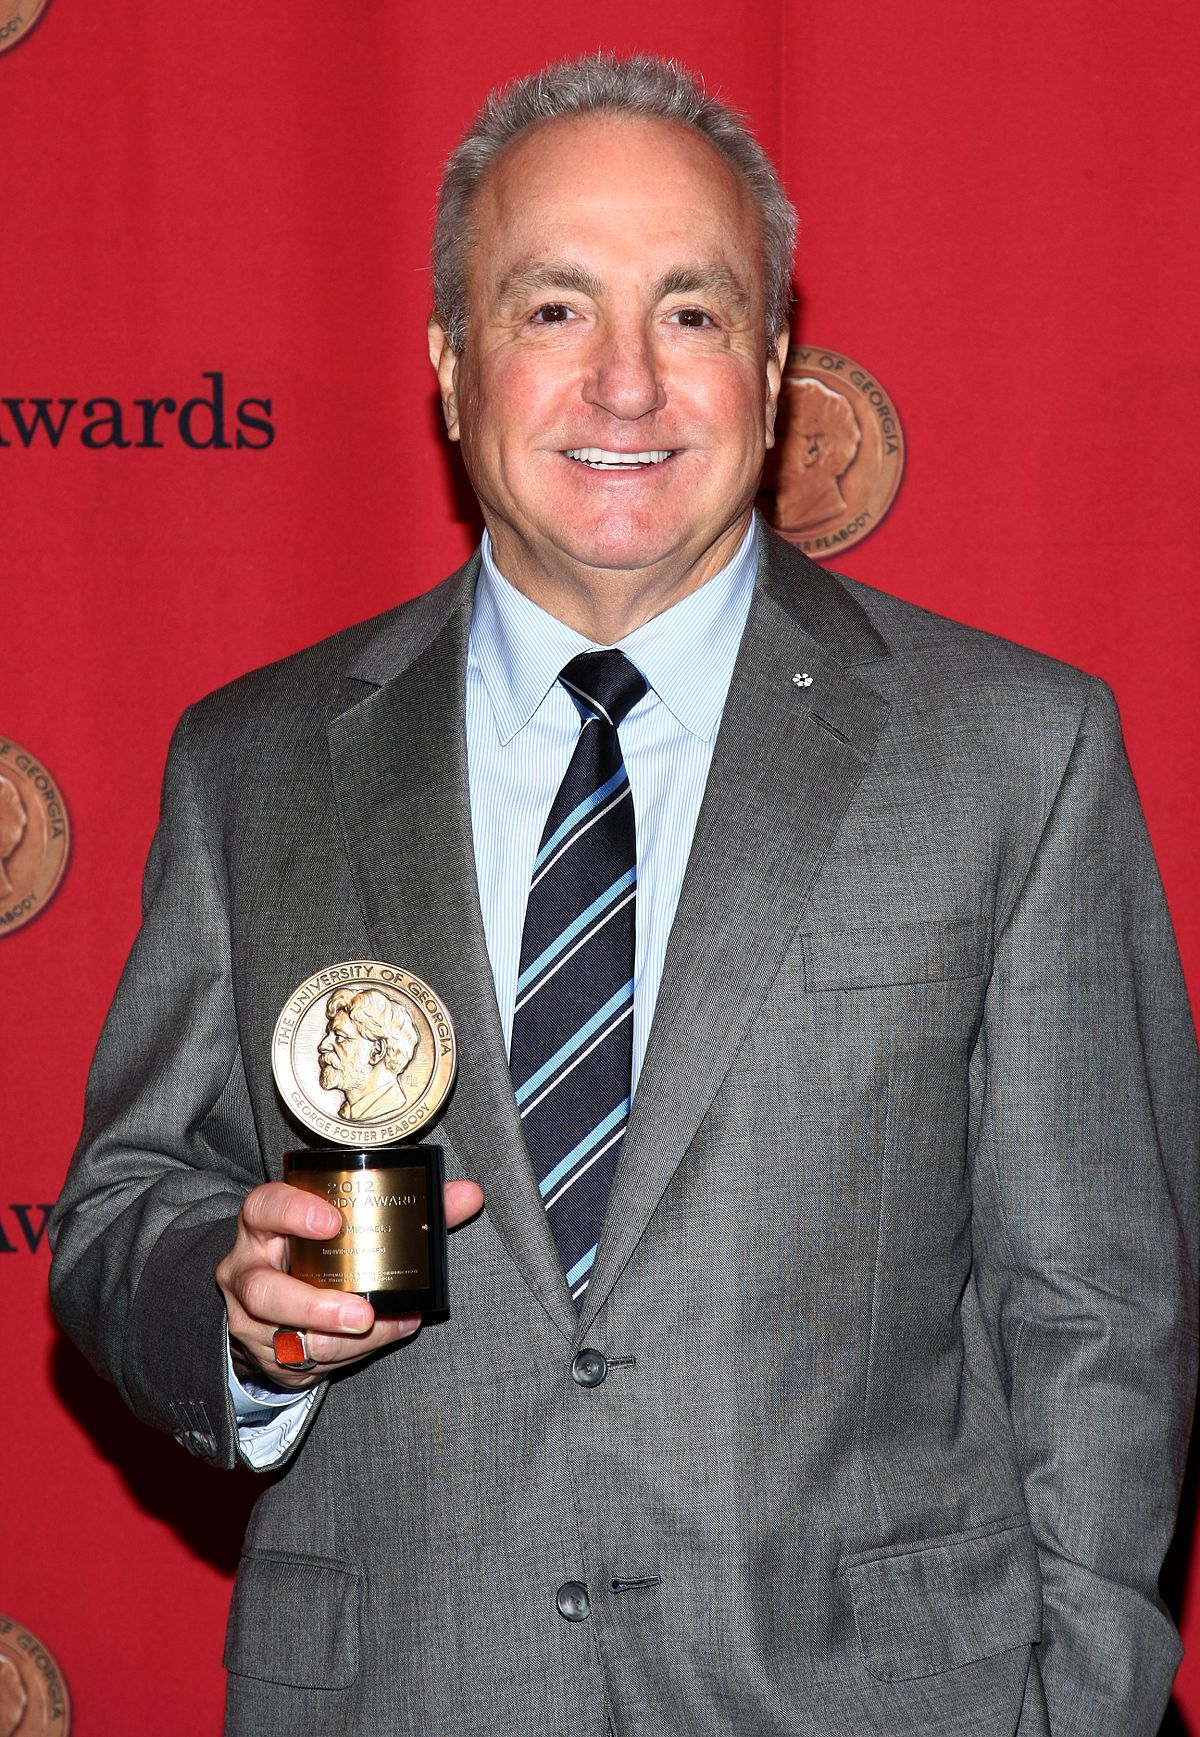 lorne michaels the office